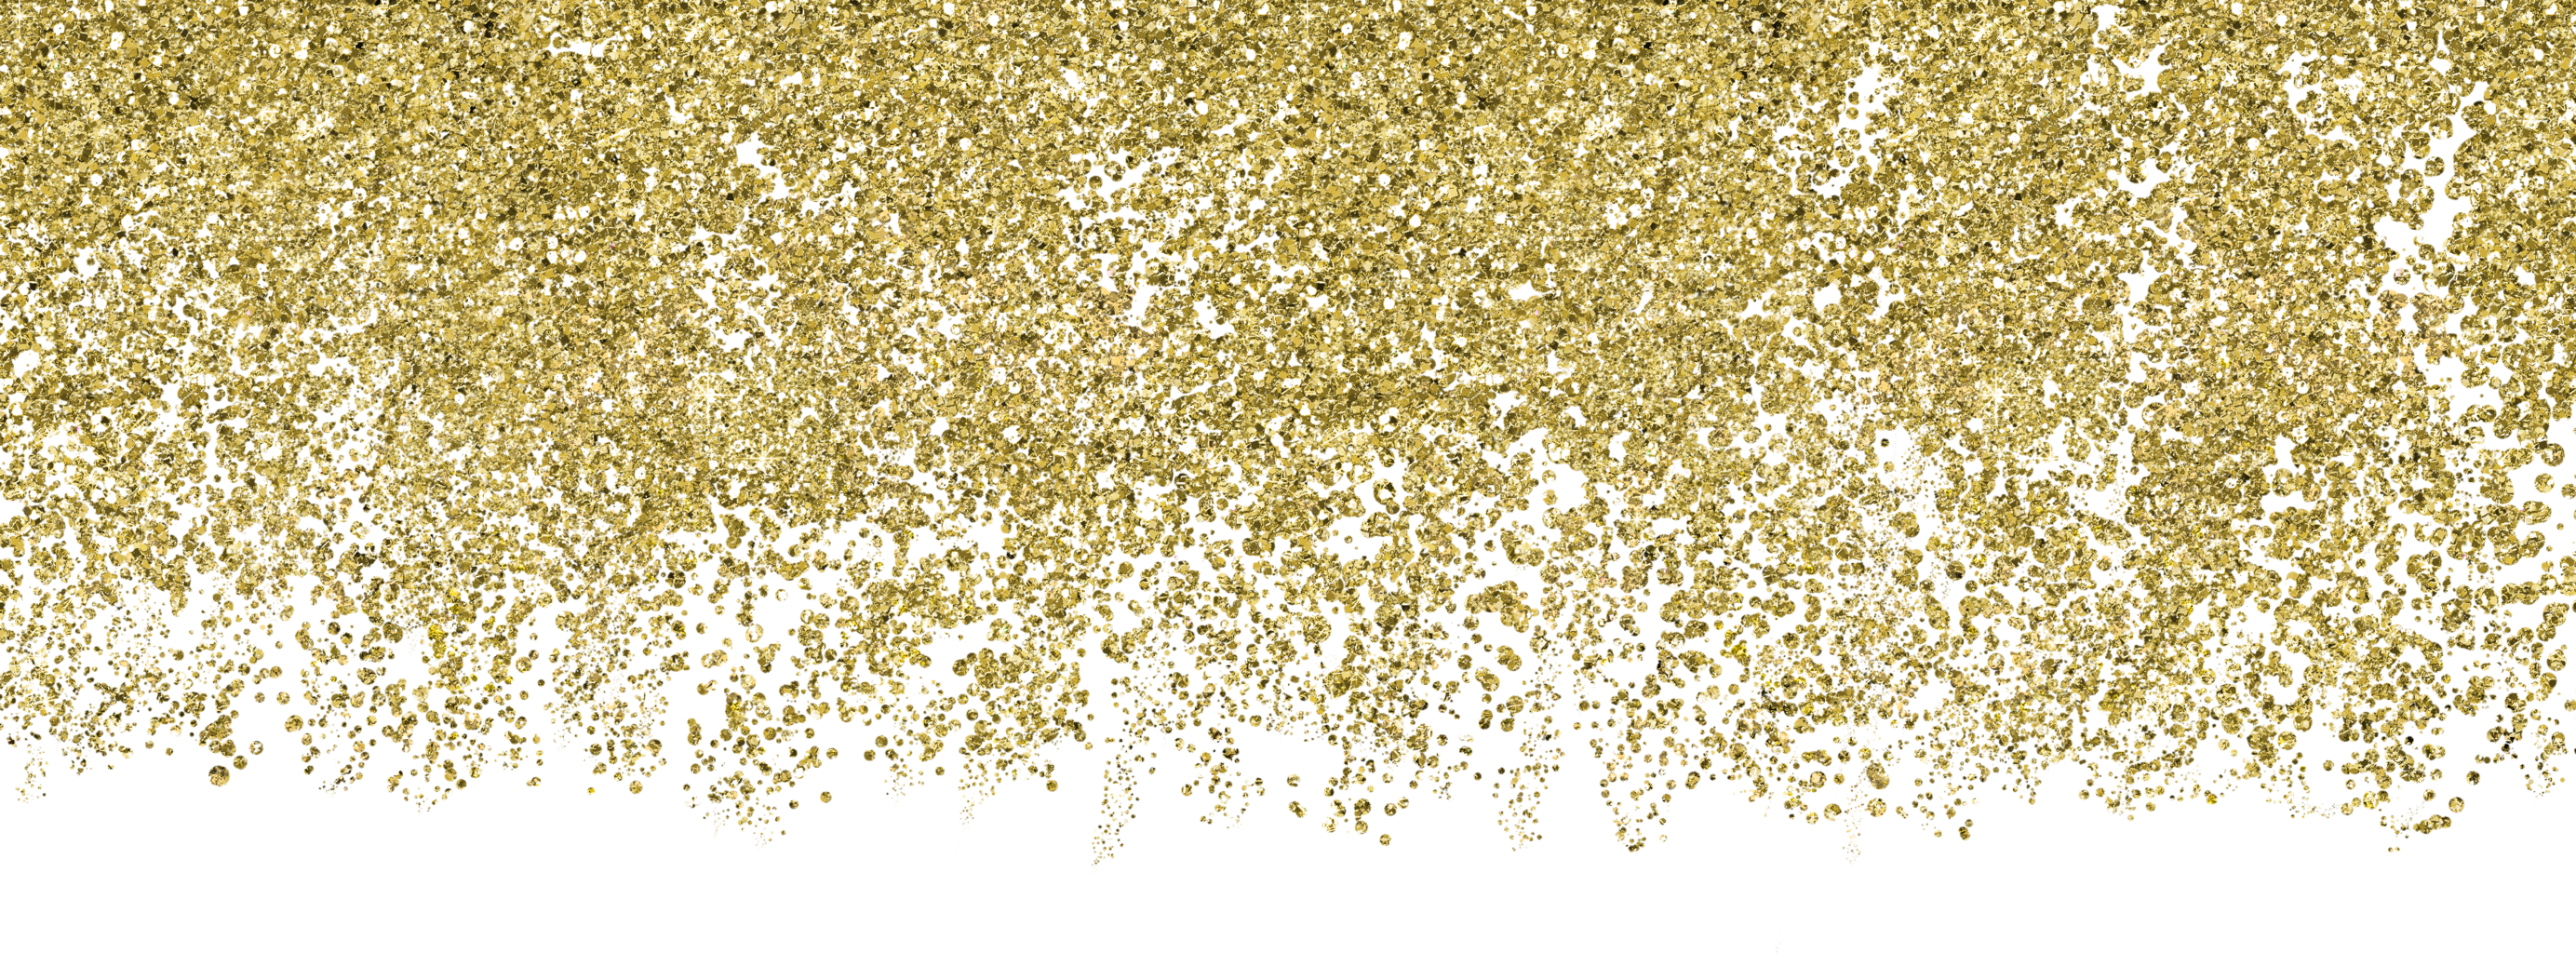 download falling gold glitter png transparent #25210